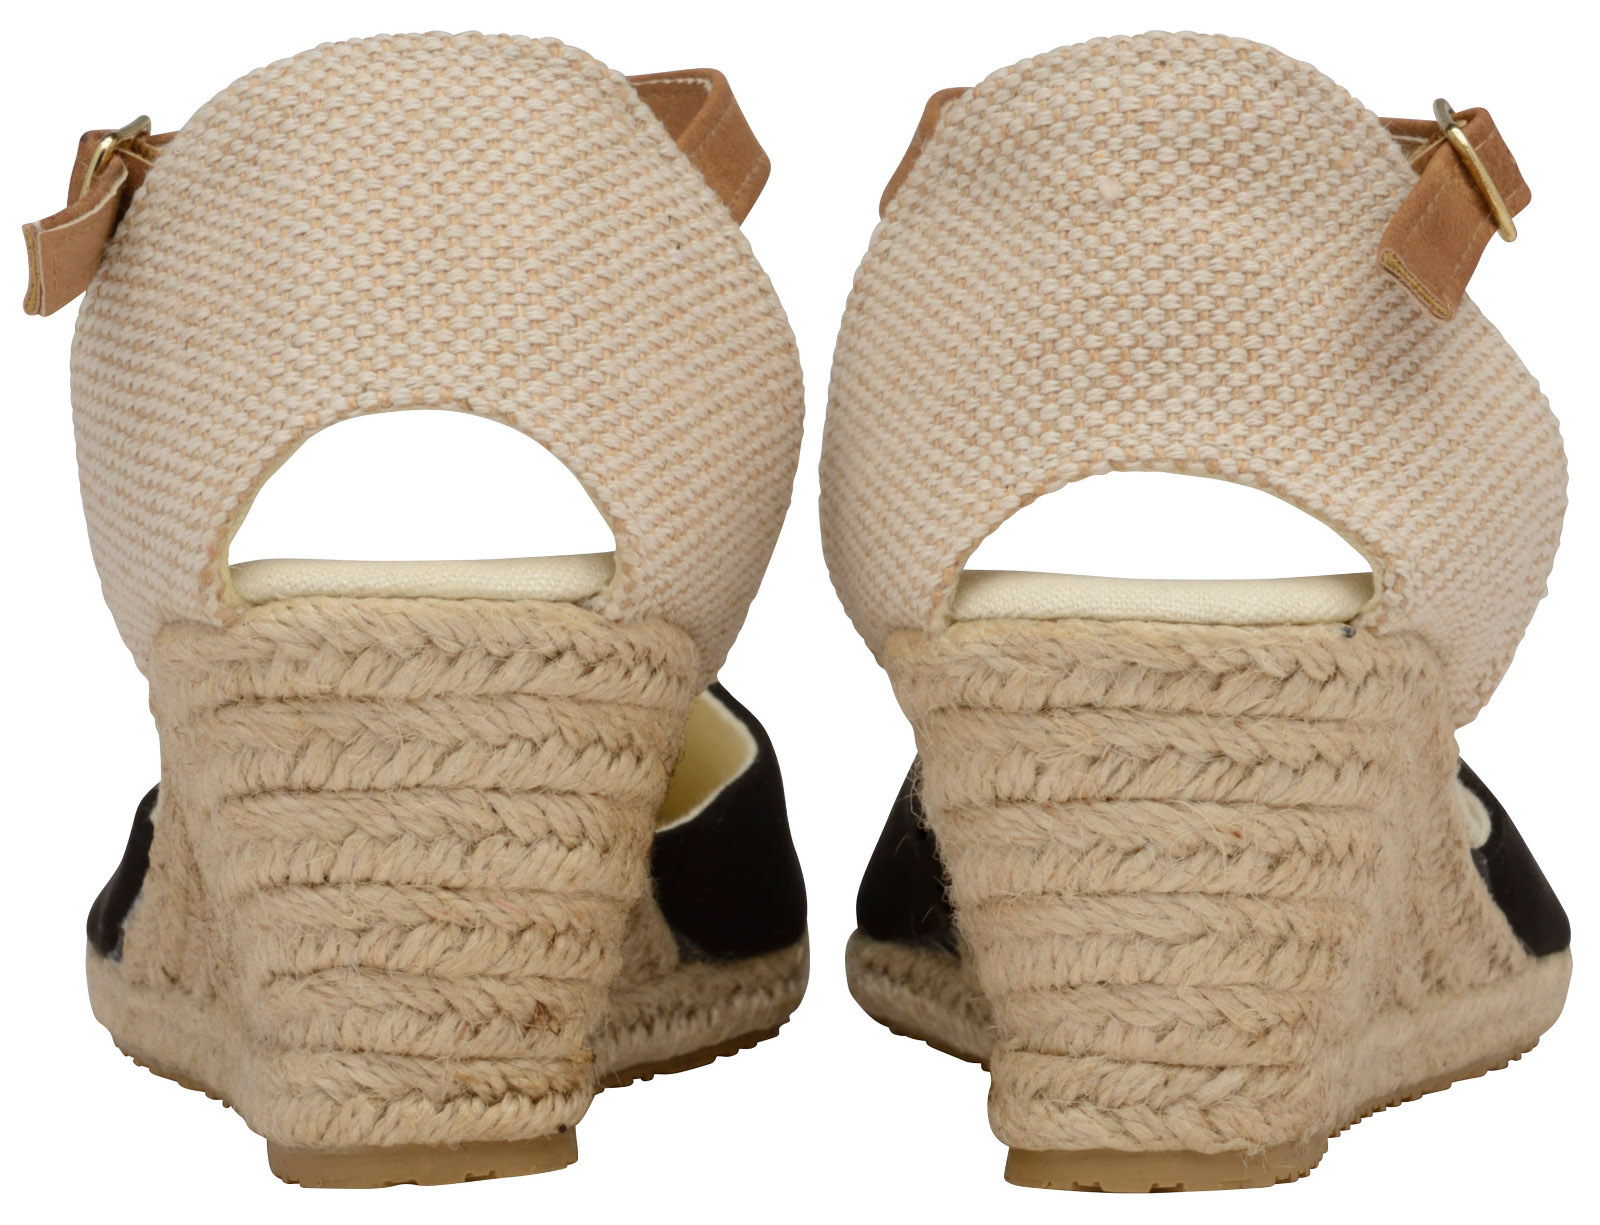 1544d3b1c96 Details about Womens Strappy Hessian Wedge Sandals Ladies High Heel Wedges  Summer Shoes Size